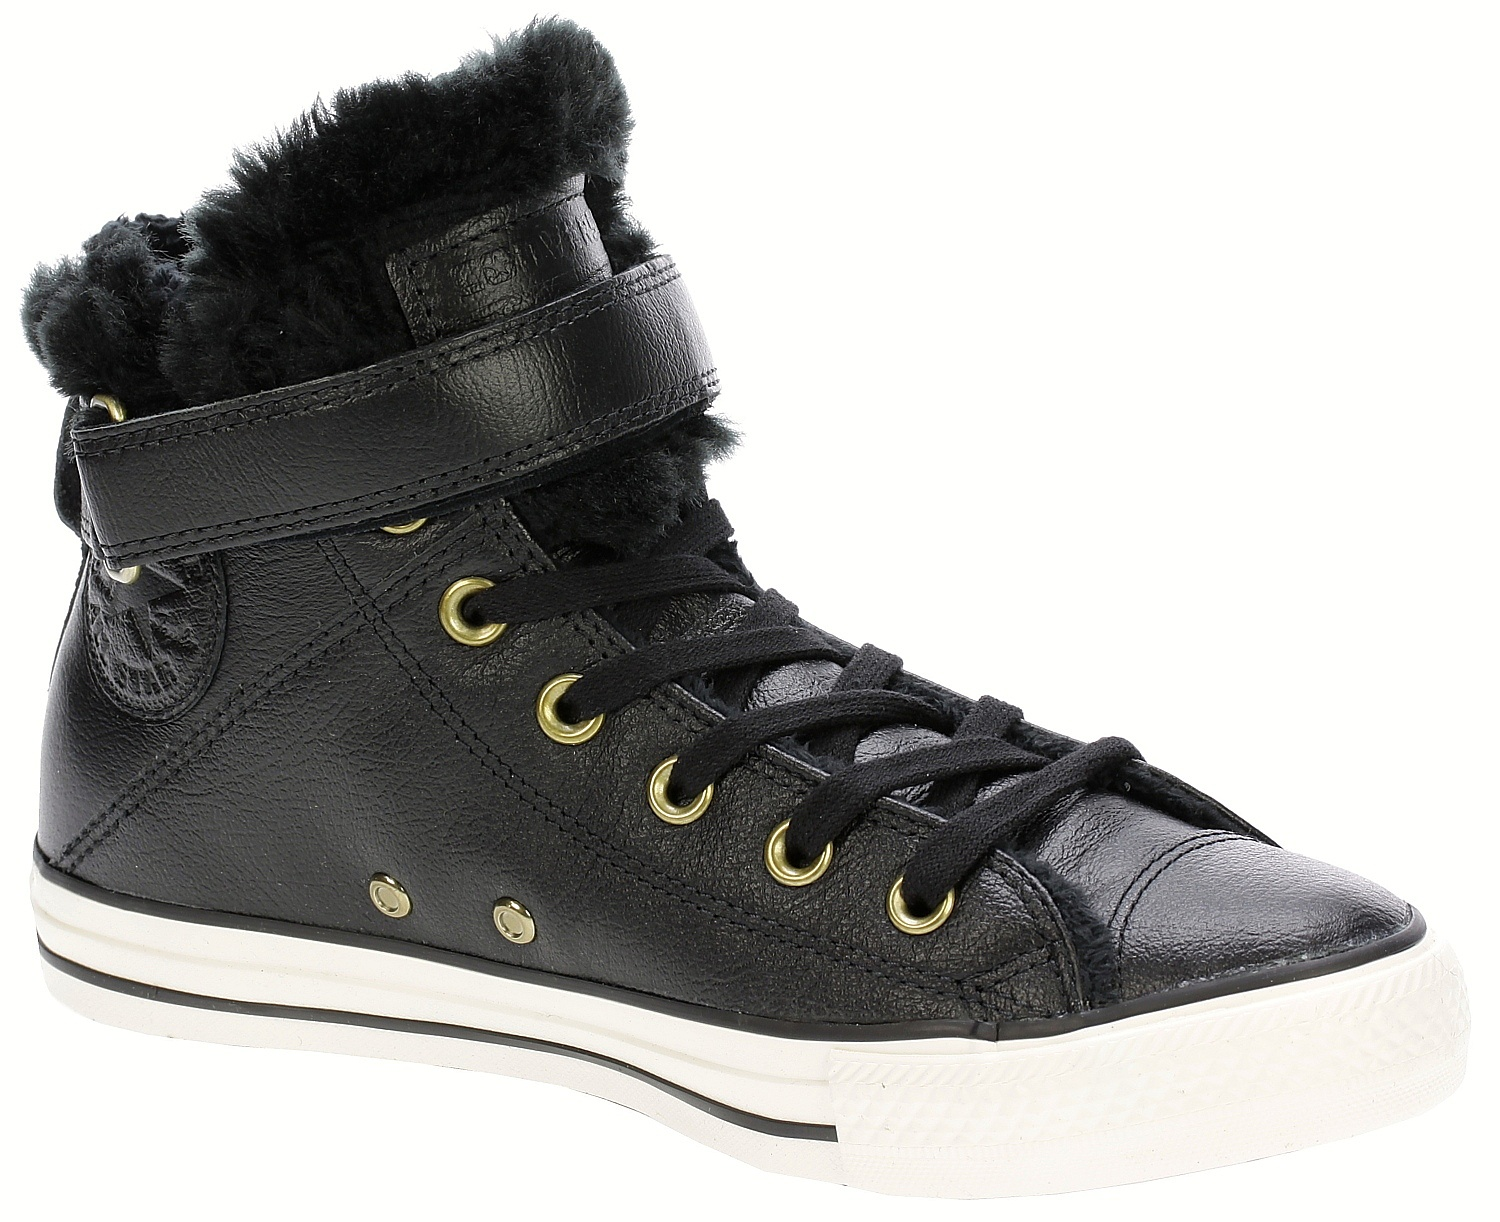 5ec3b4db746f boty Converse Chuck Taylor All Star Brea Leather Hi -  553394 Black Black Egret - Snowboard shop